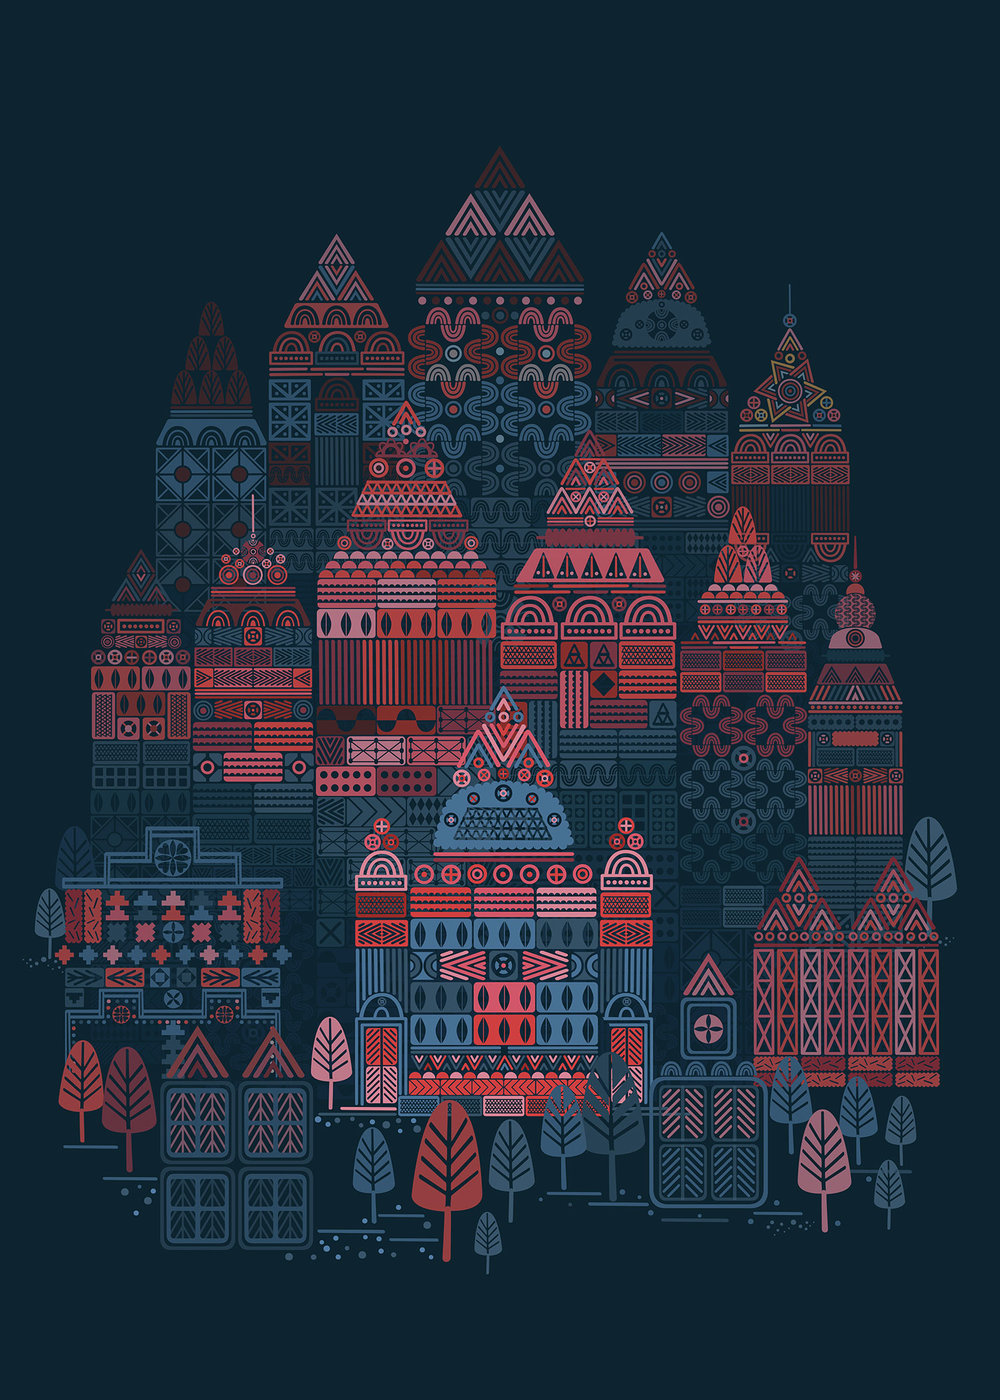 Utopian Night is a piece from the Utopian City series, built with geometric shapes and a complex color palette. By changing the color palette they bring out the seductive and mystical night.